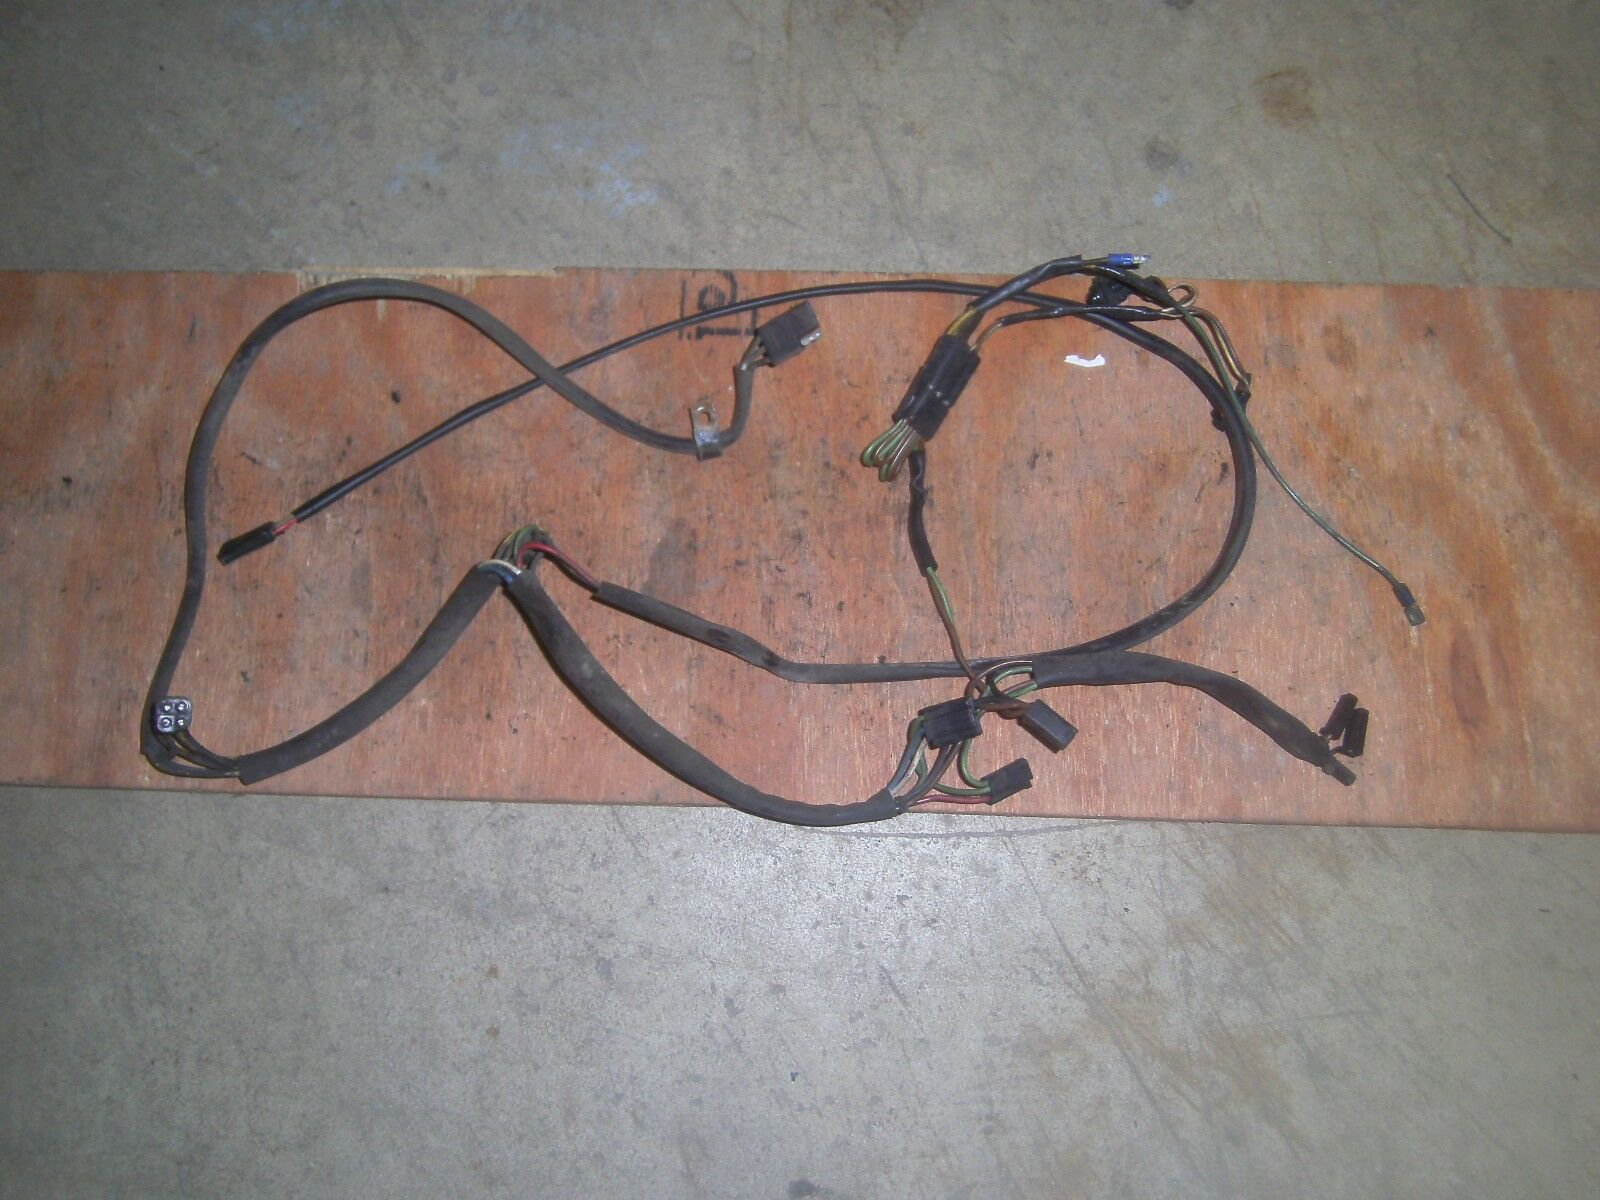 1977 ARCTIC CAT PANTHER 4000 MAIN WIRE HARNESS 0109-849